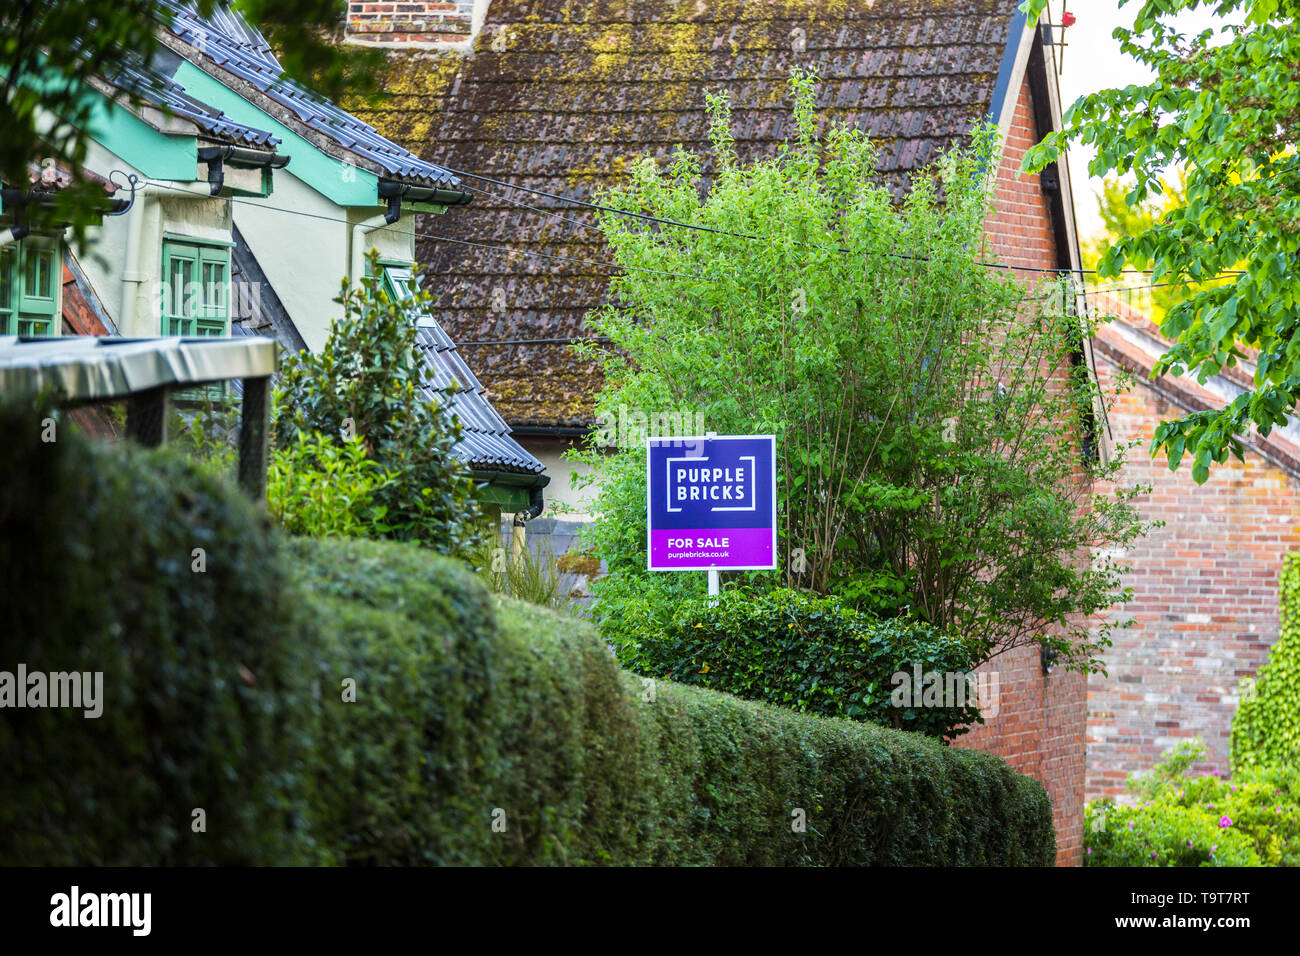 Purple Bricks estate agents sign at a rural property in the Suffolk countryside. - Stock Image